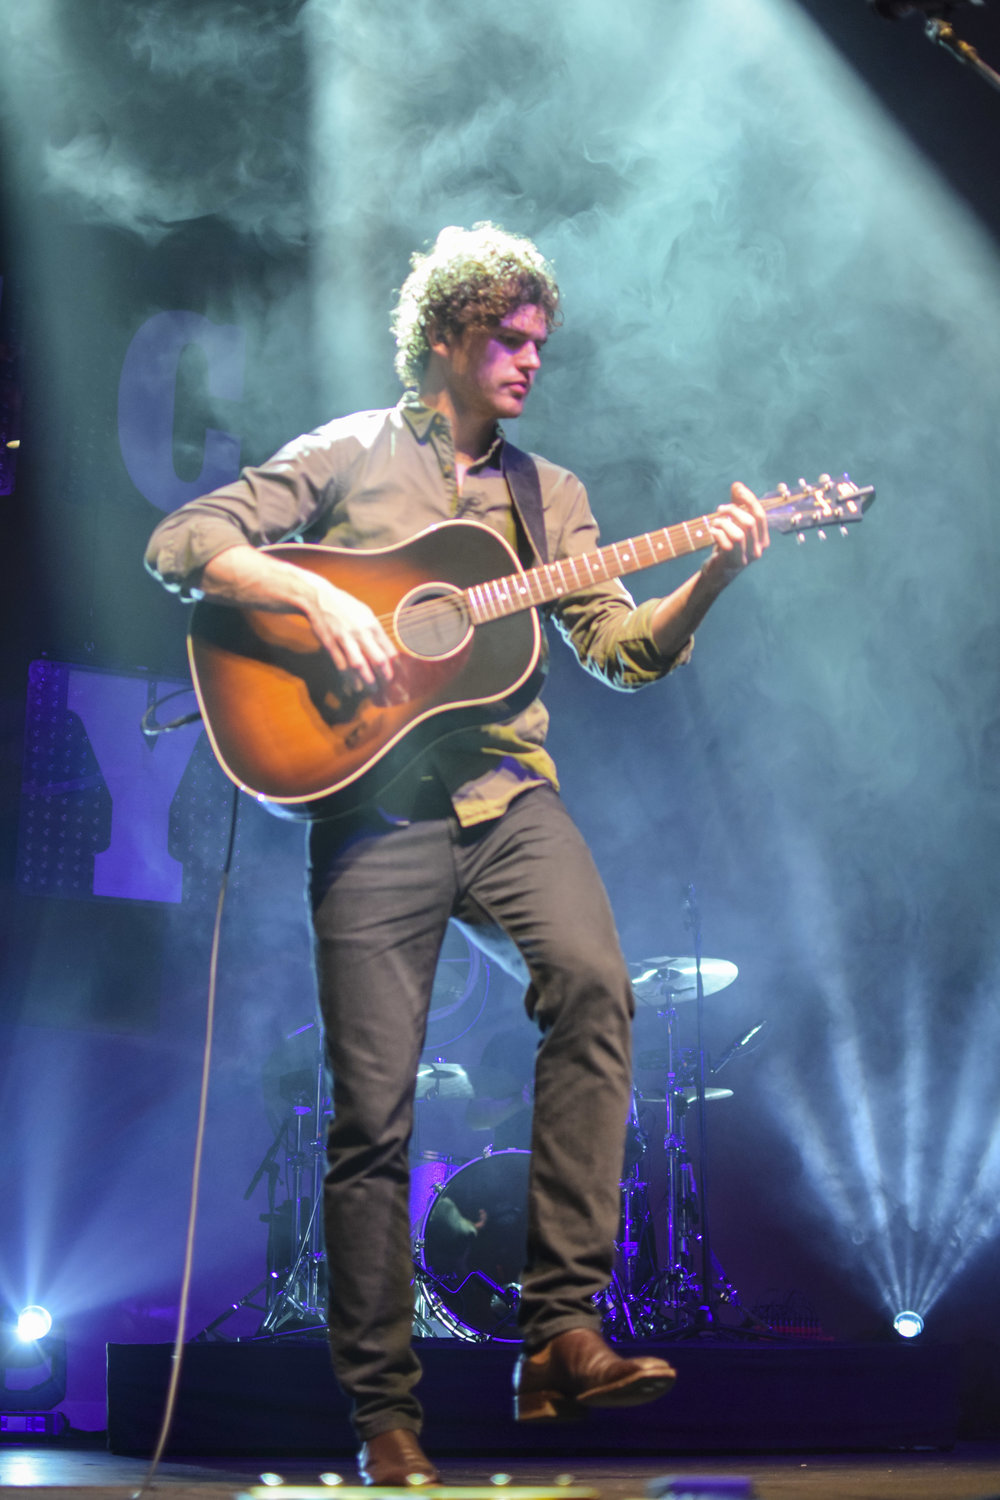 VanceJoy_Feb2016DSC_0185_Edited_Small.jpg